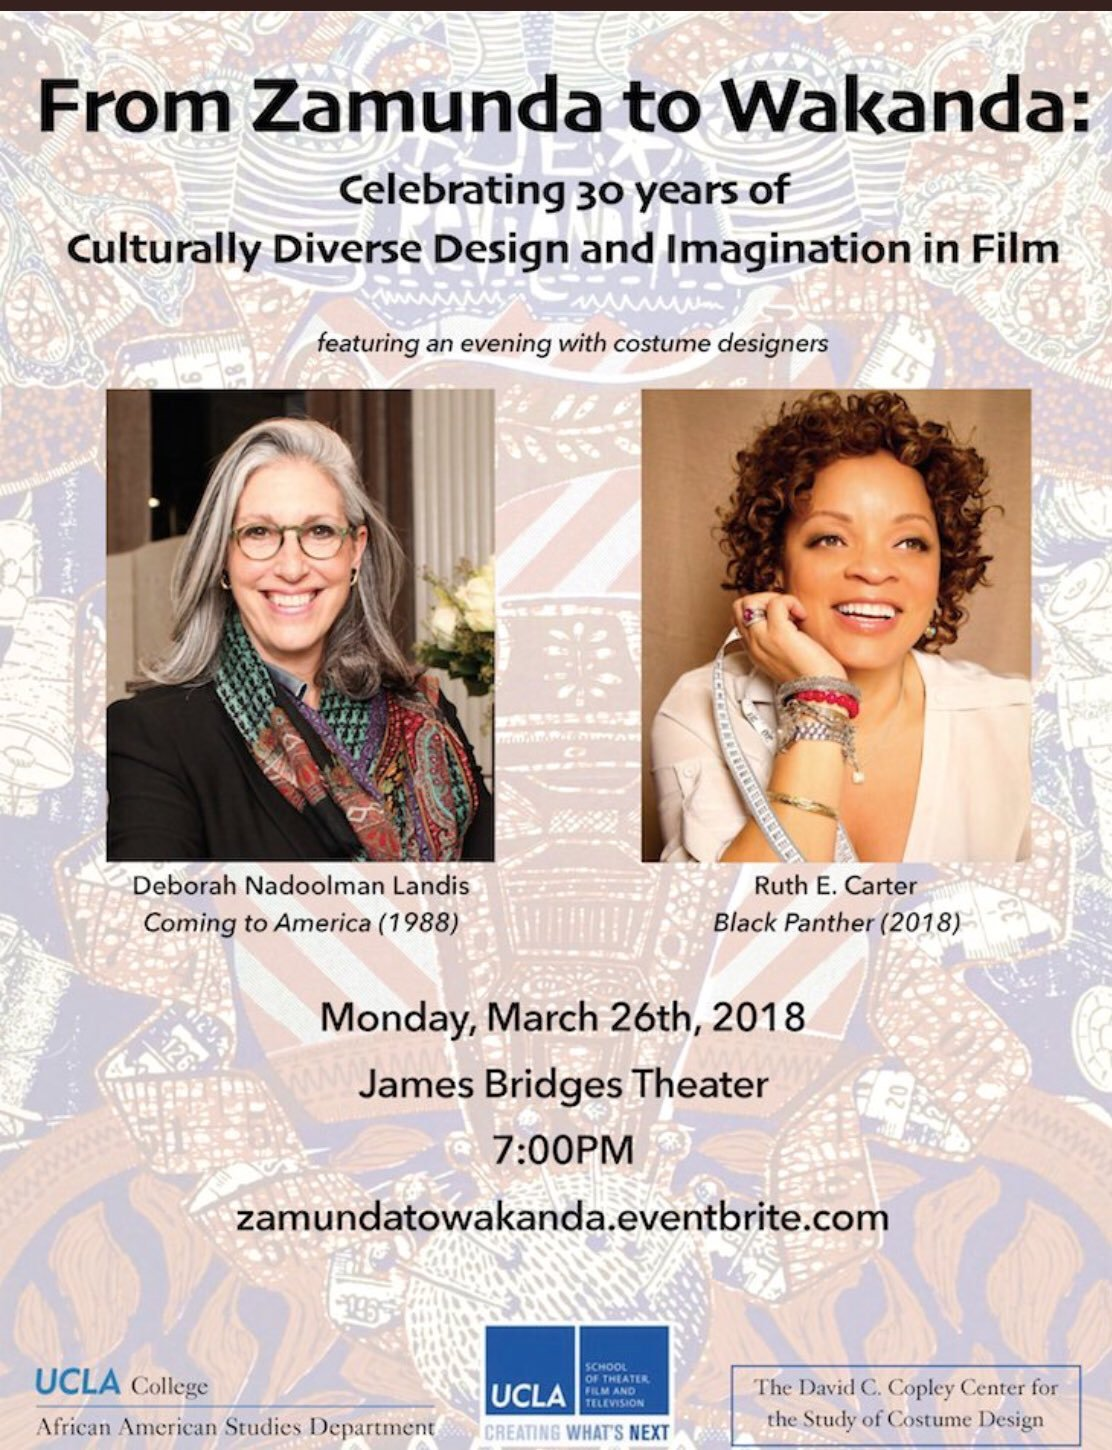 Tananarive Due On Twitter Tonight I M Co Moderating An Event At Ucla With My Department Chair Manthonyhunter From Zamunda To Wakanda A Conversation With Blackpanther Costume Designer Ruth E Carter Coming